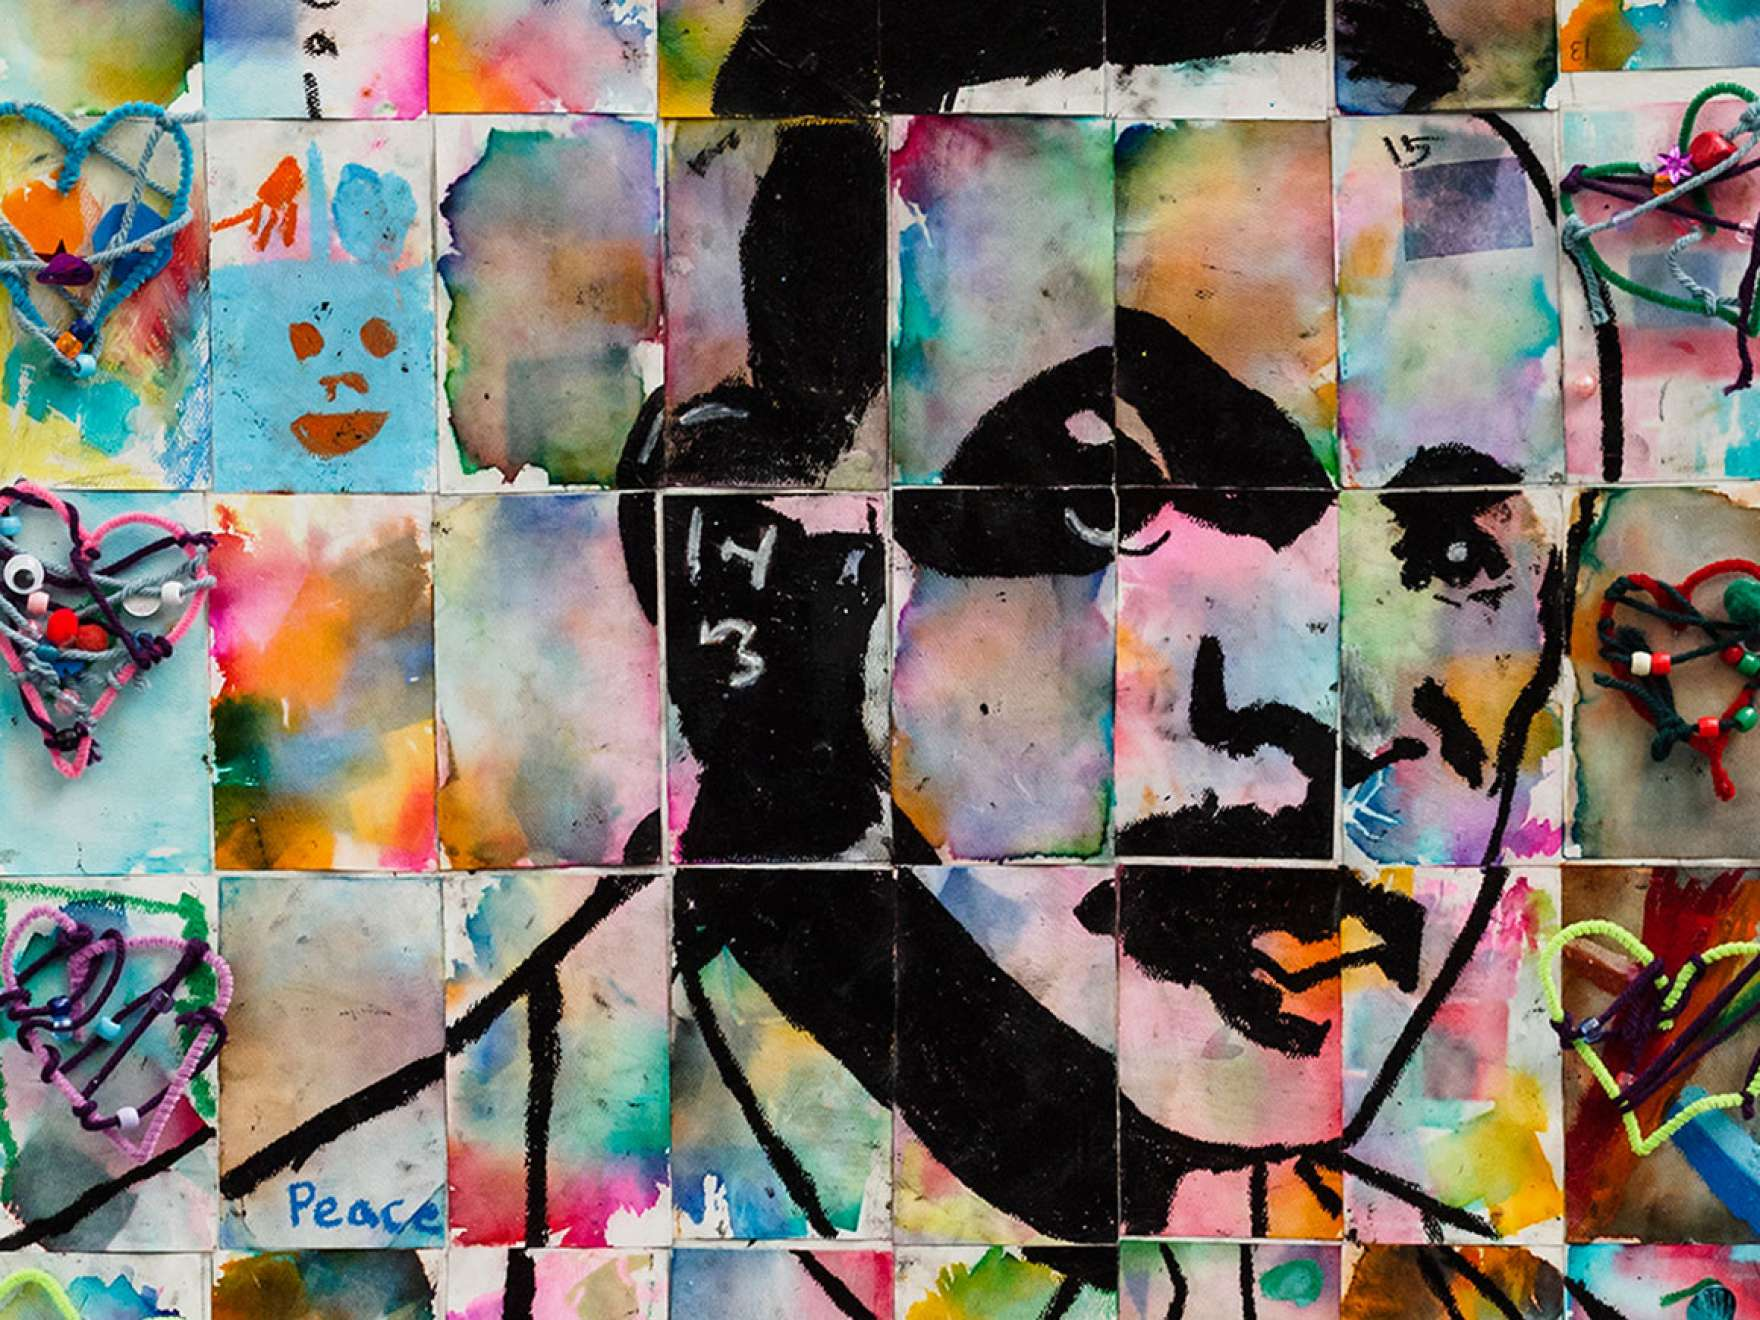 Collaborative work of art by students from the Boston Chinatown Neighborhood Center for the MFA's MLK Open House, January 19, 2015